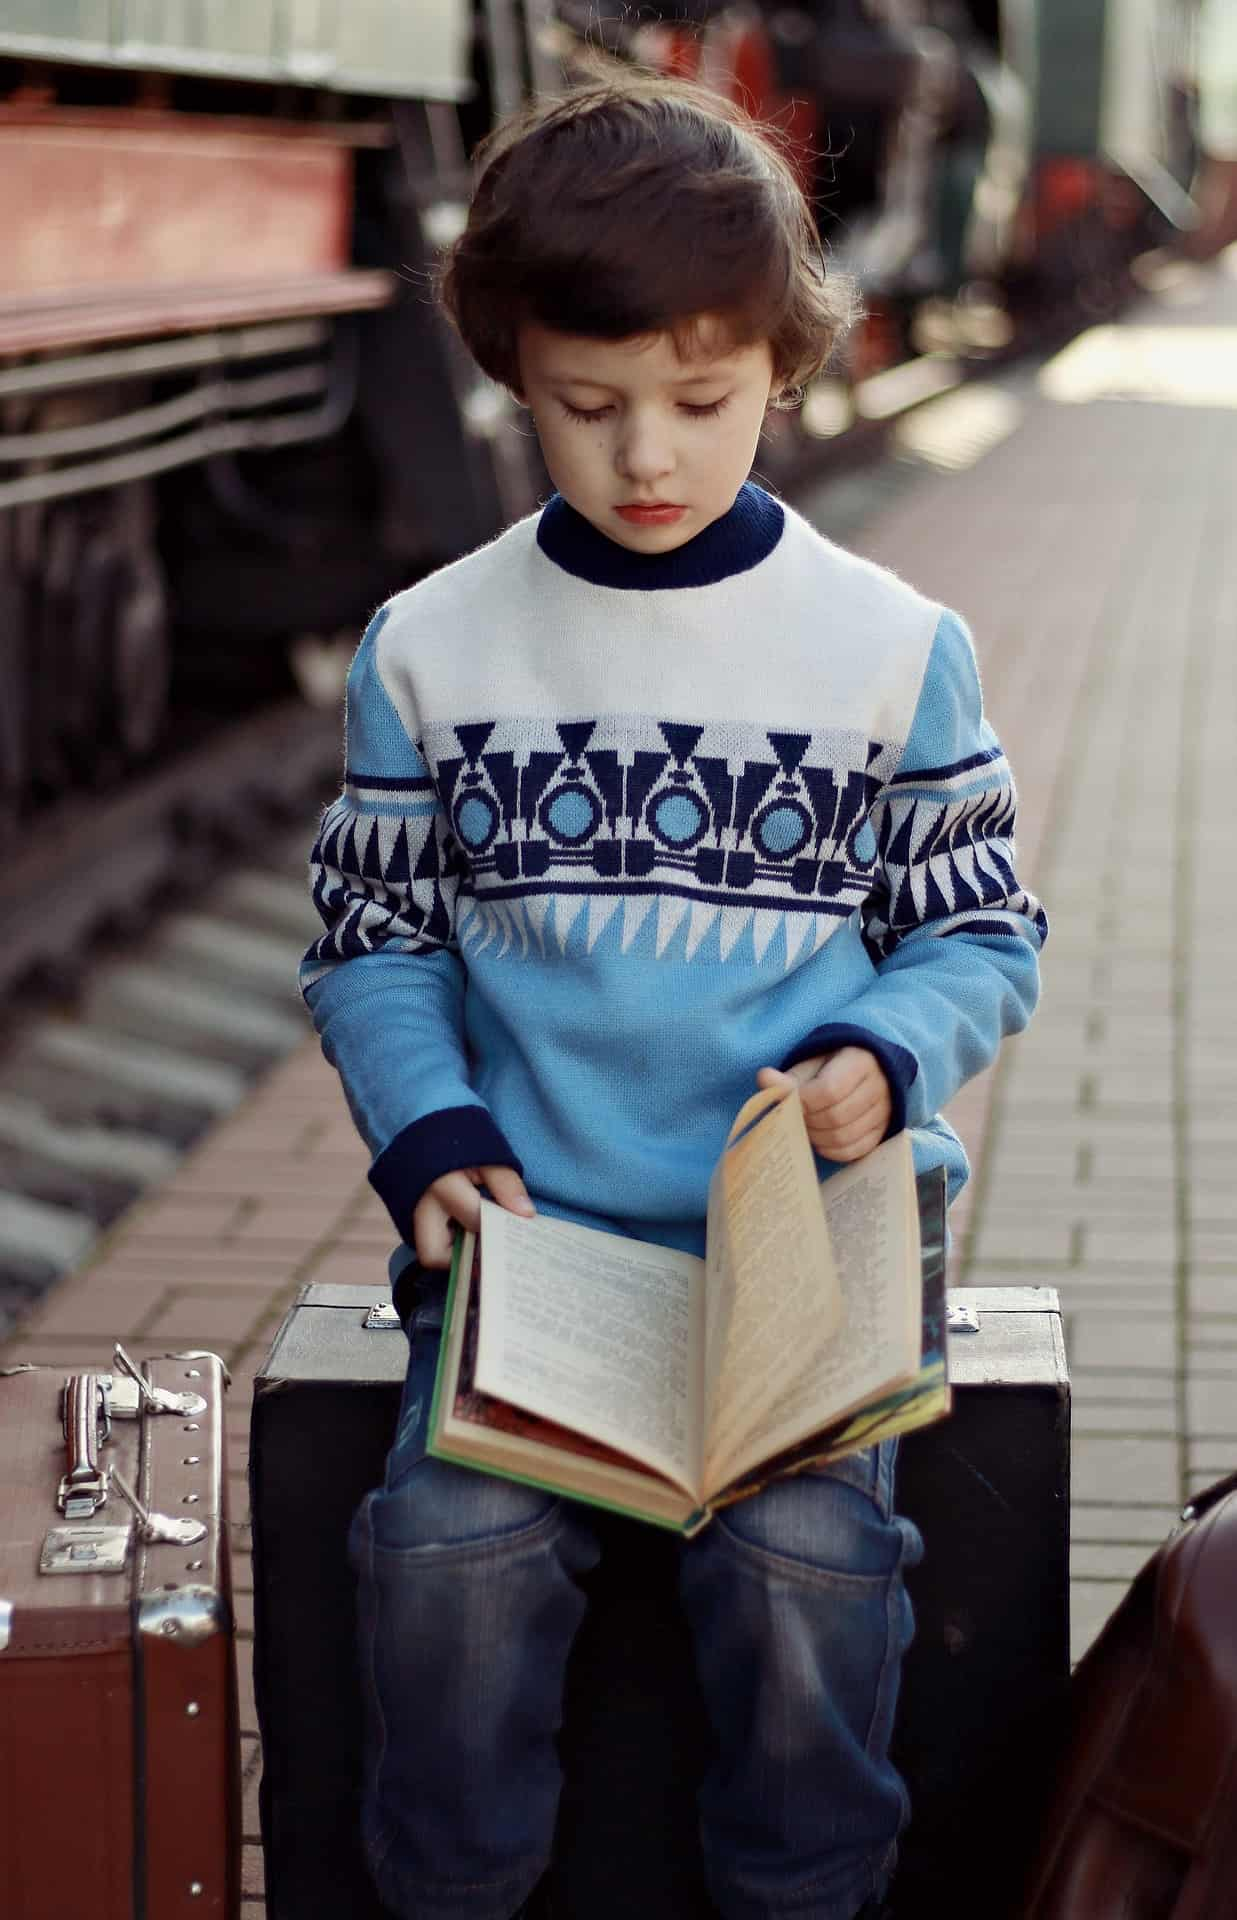 How to Encourage Reading for Children - Reading while waiting for a train. How to develop reading habit in kids